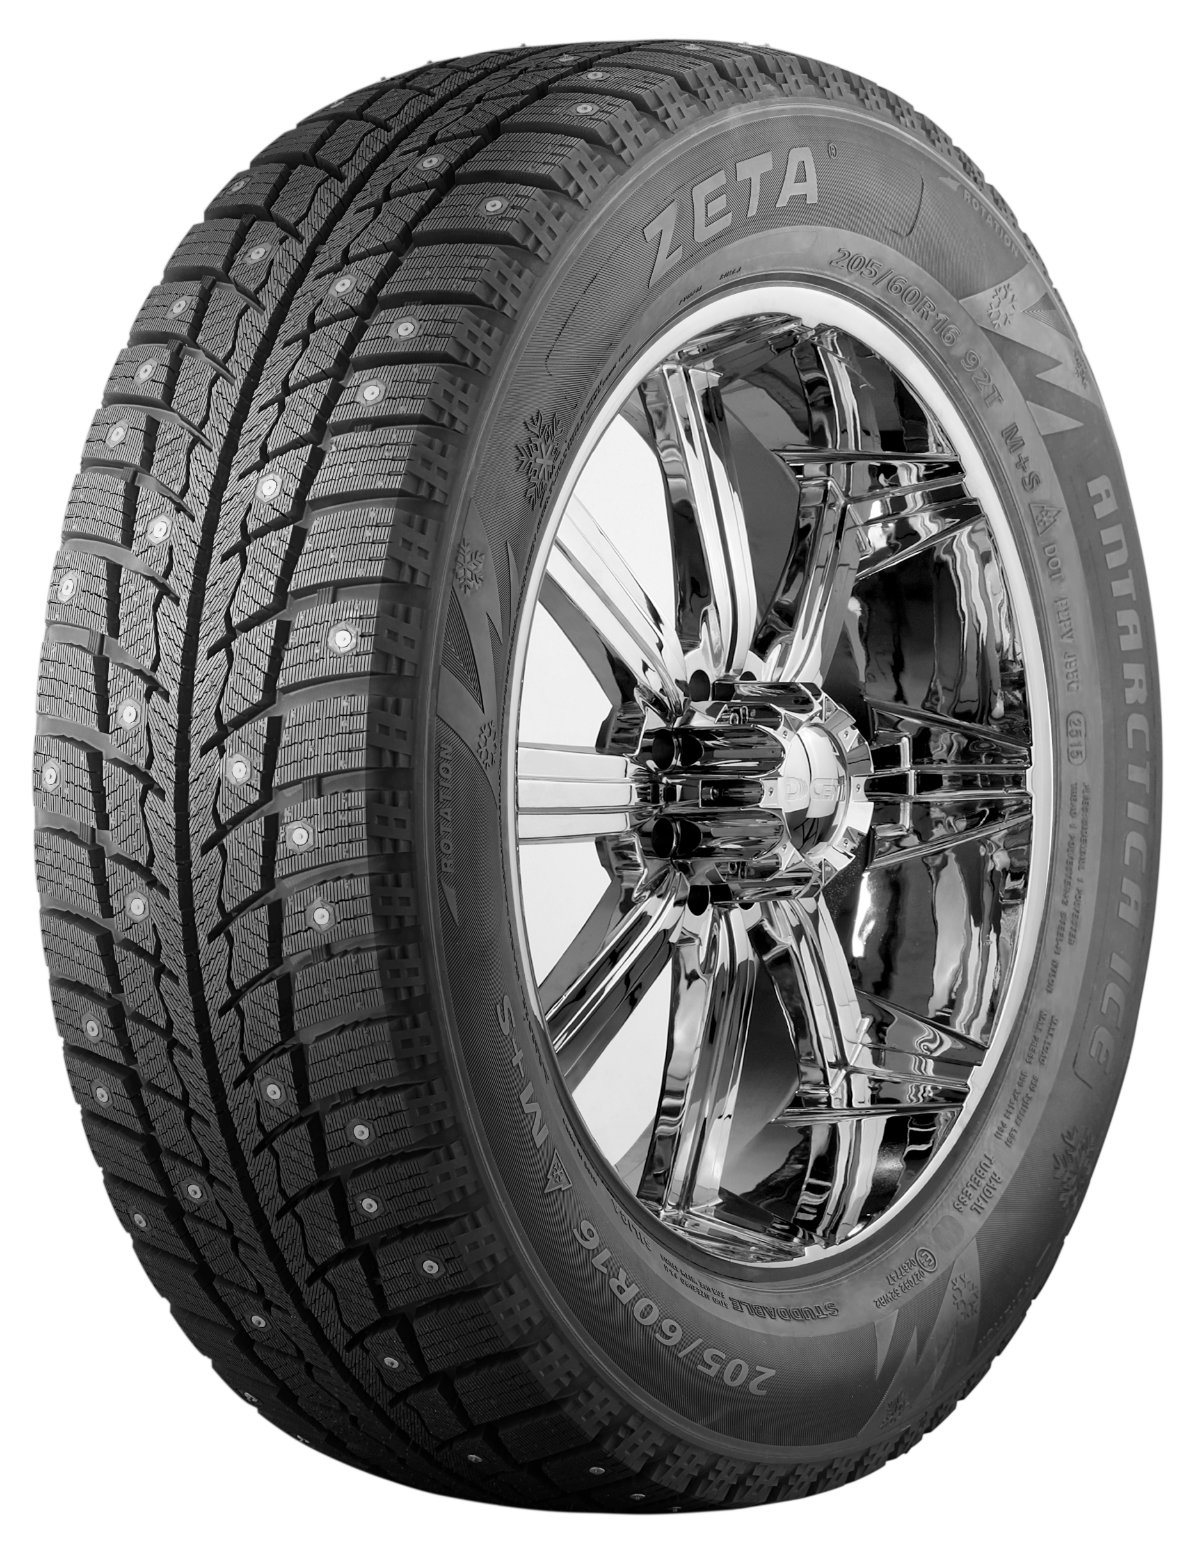 Wholesale Tires Near Me >> Hot Item Wholesale Car Tires Suv Tires 18 Inch Winter Tyres Near Me 225 40r18 225 40r18